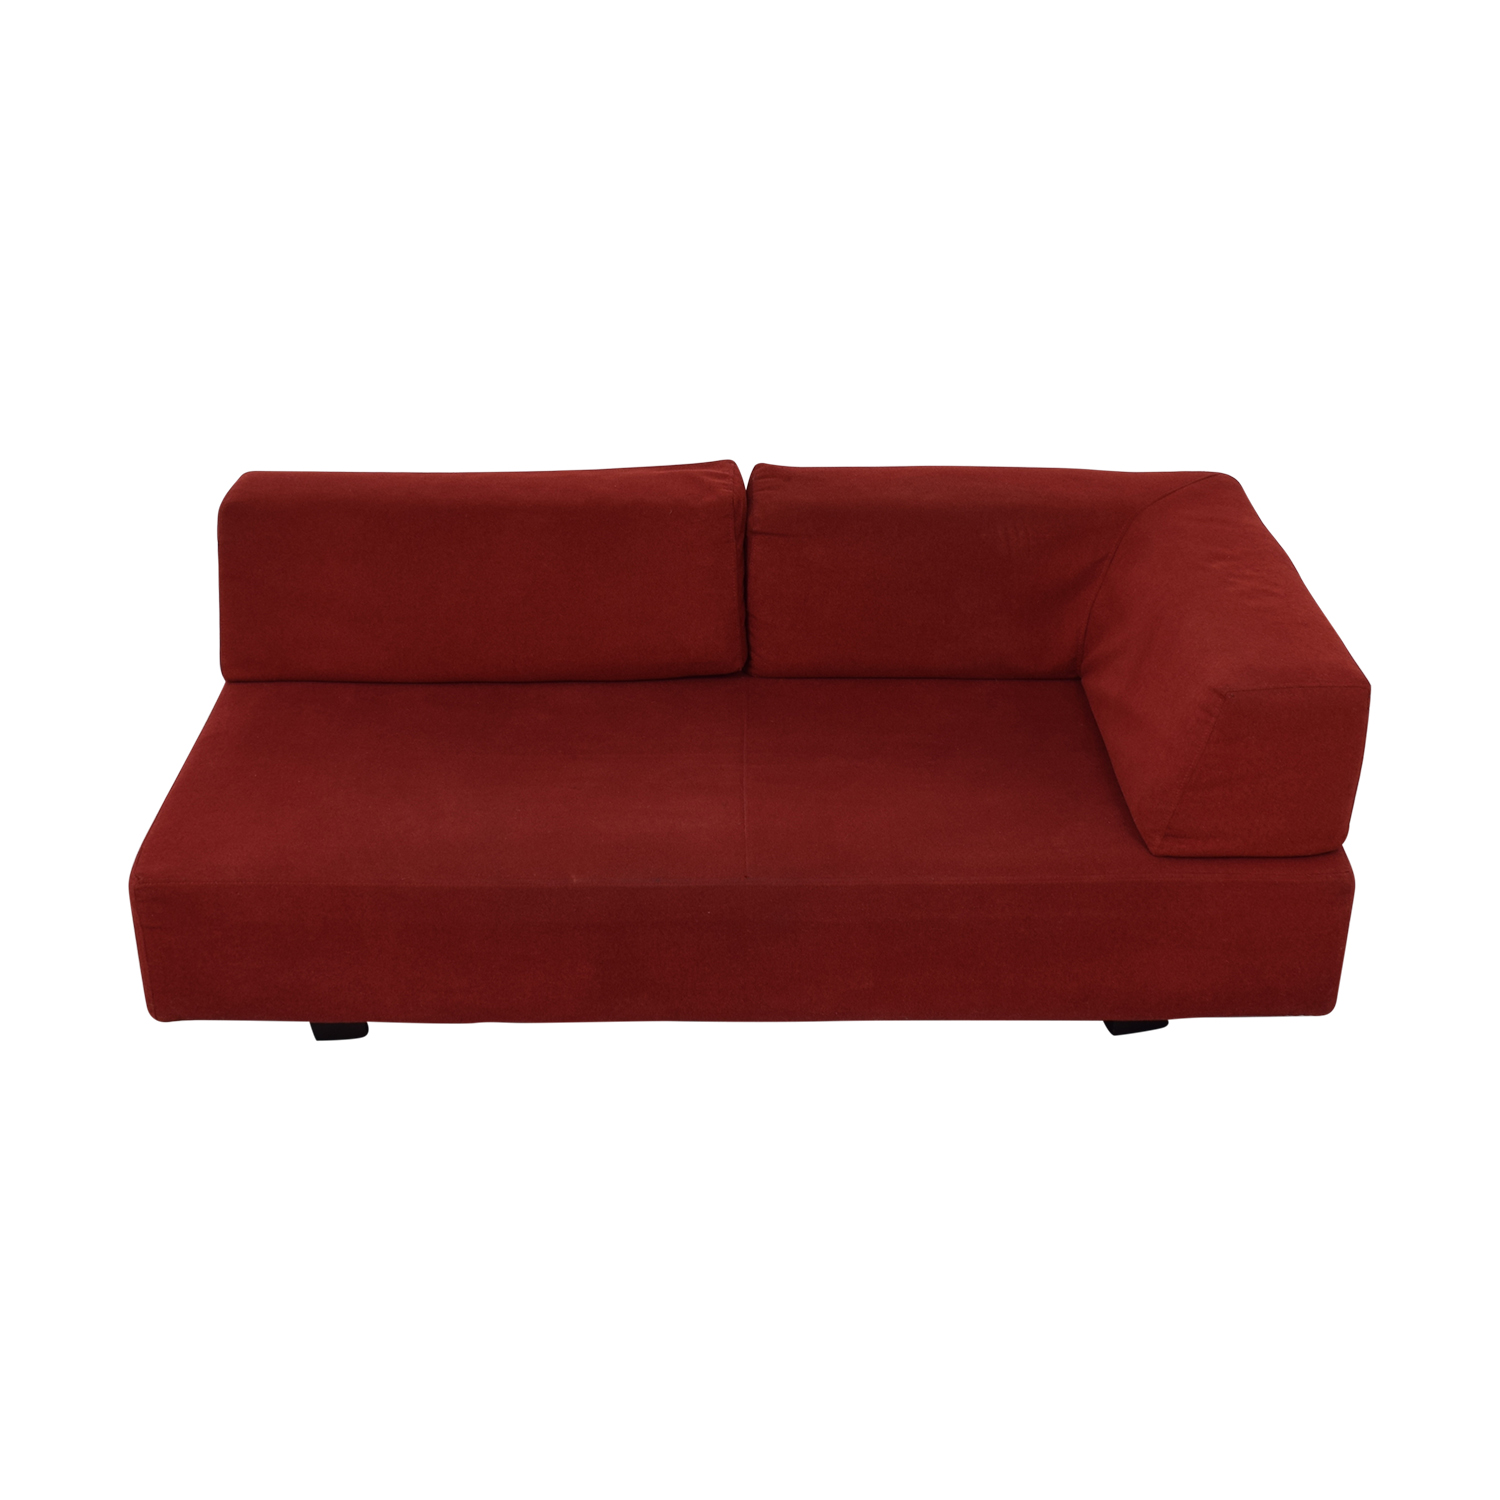 West Elm West Elm Red Chaise discount